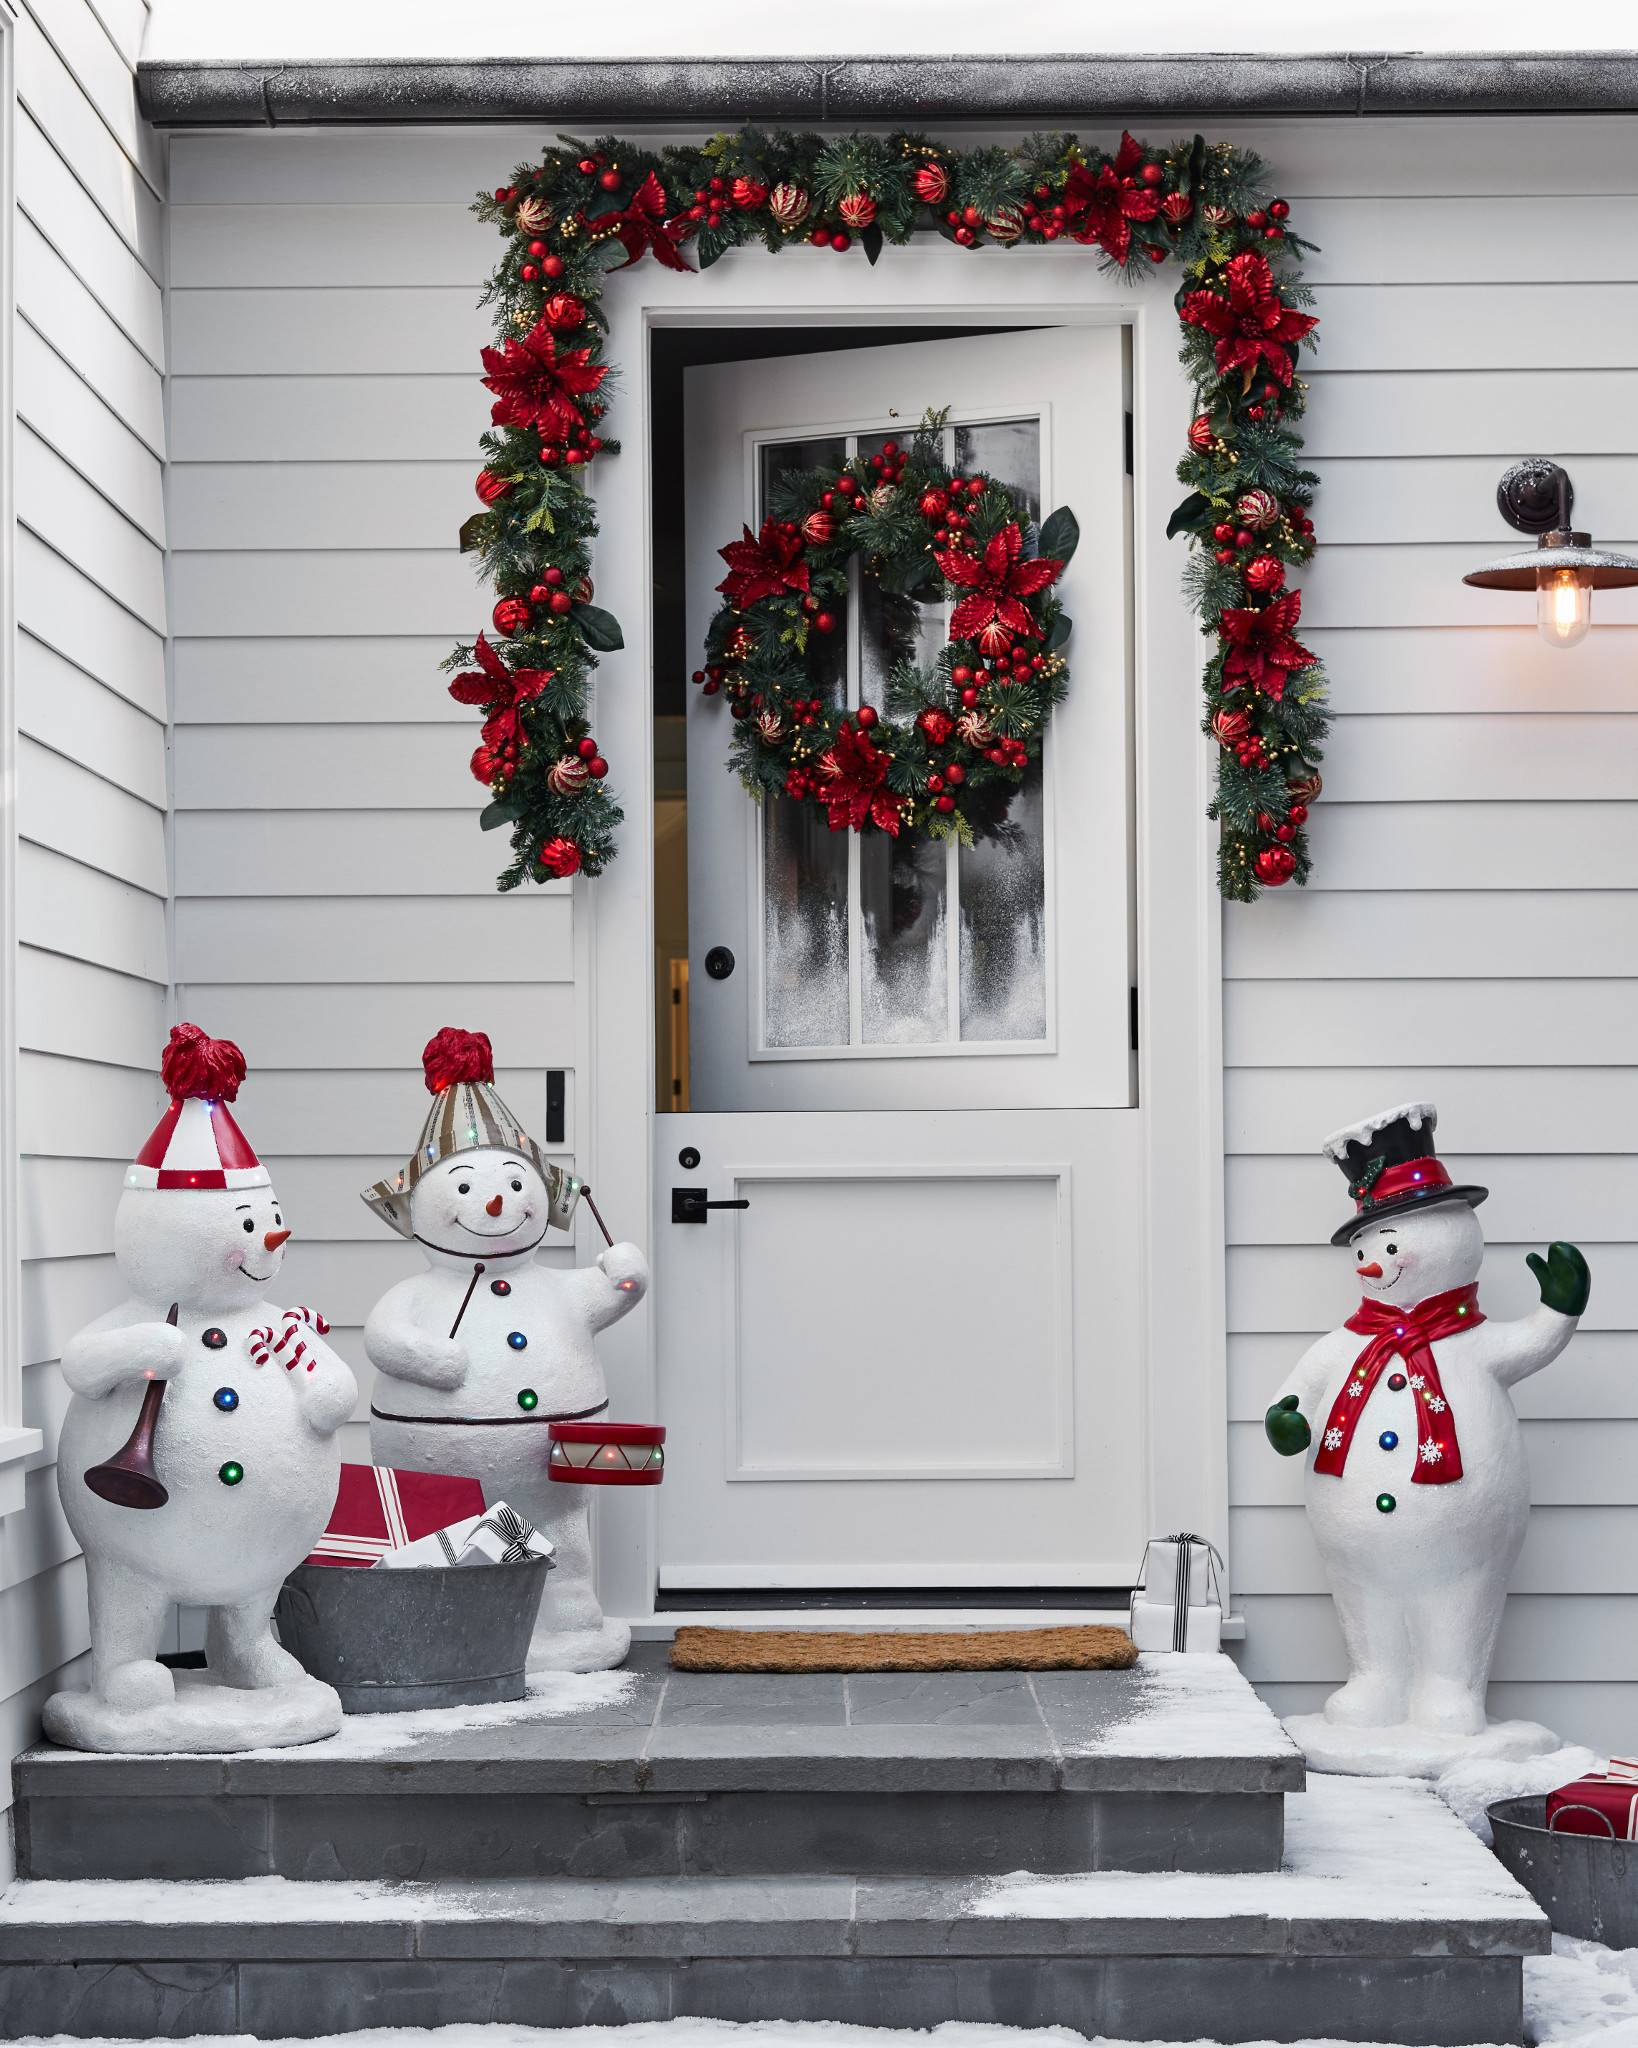 dma snowman homes surprisingly decor christmas decorations